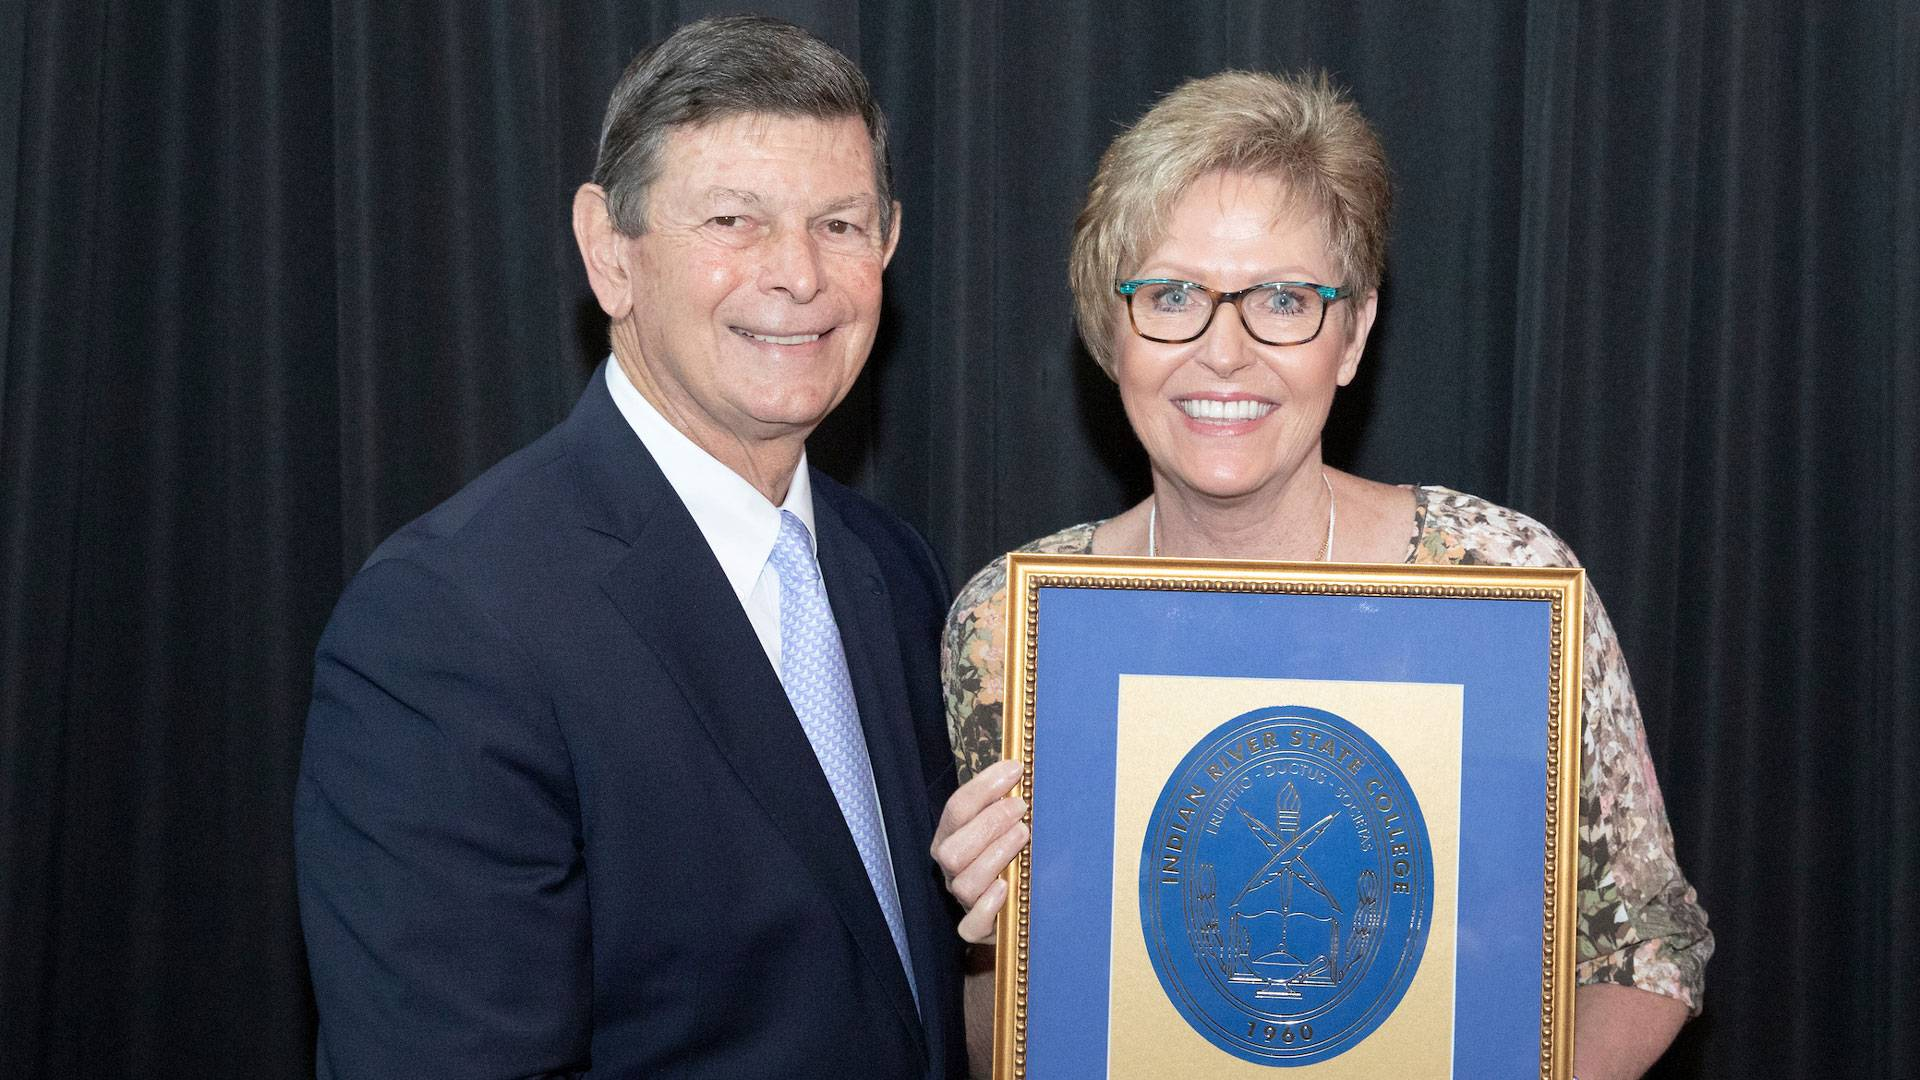 Deborah Liskin was named the 2019 Anne R. Snyder Department Chair Excellence Award Recipient